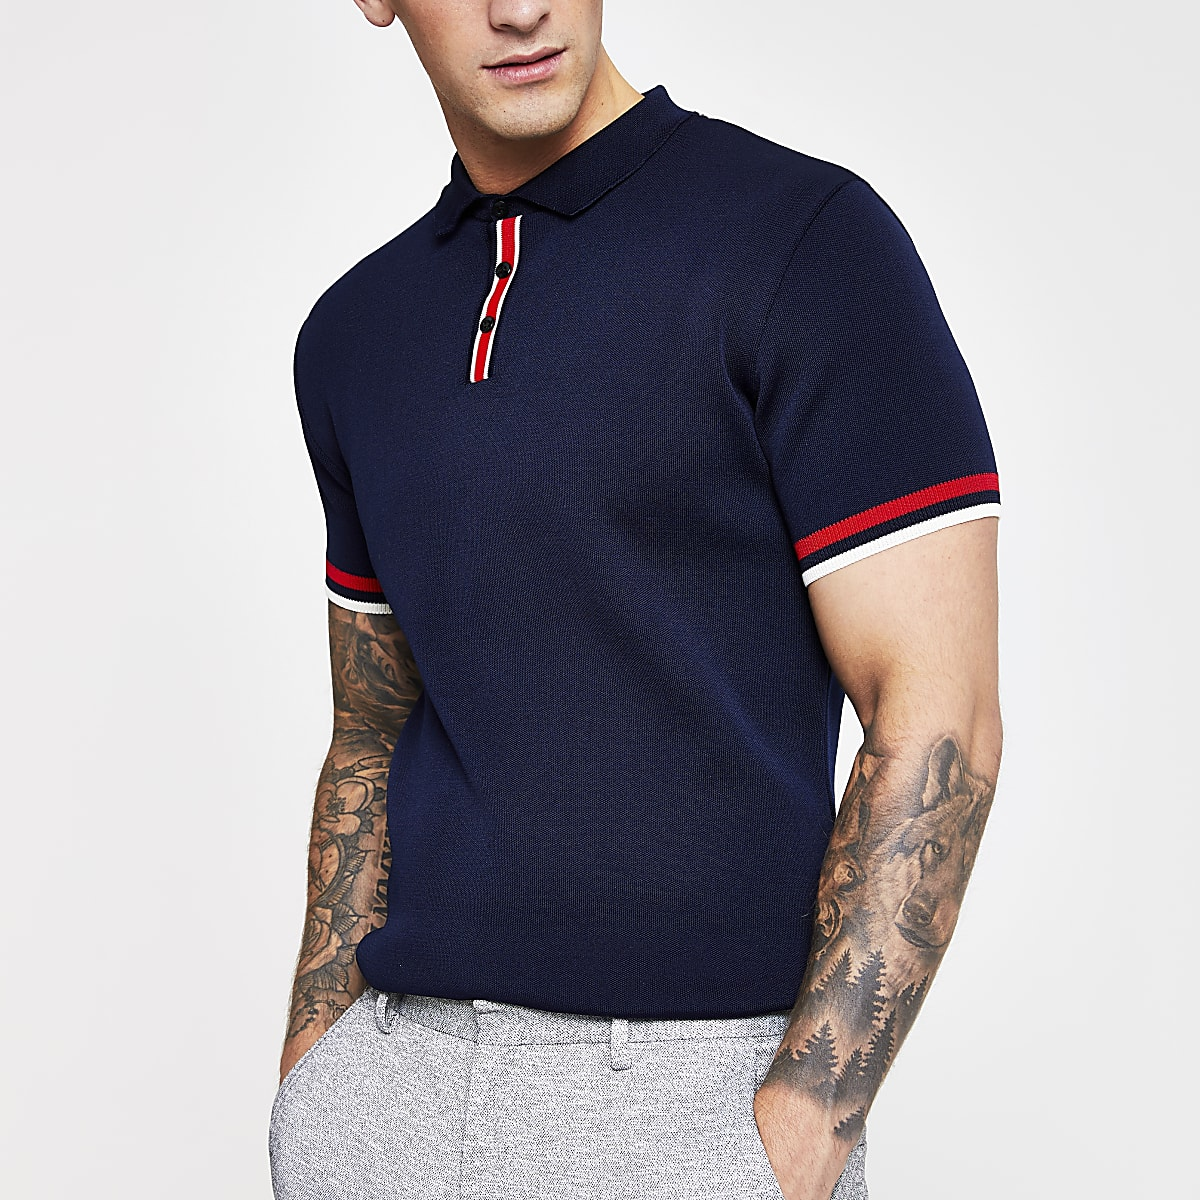 Navy slim fit knitted polo shirt